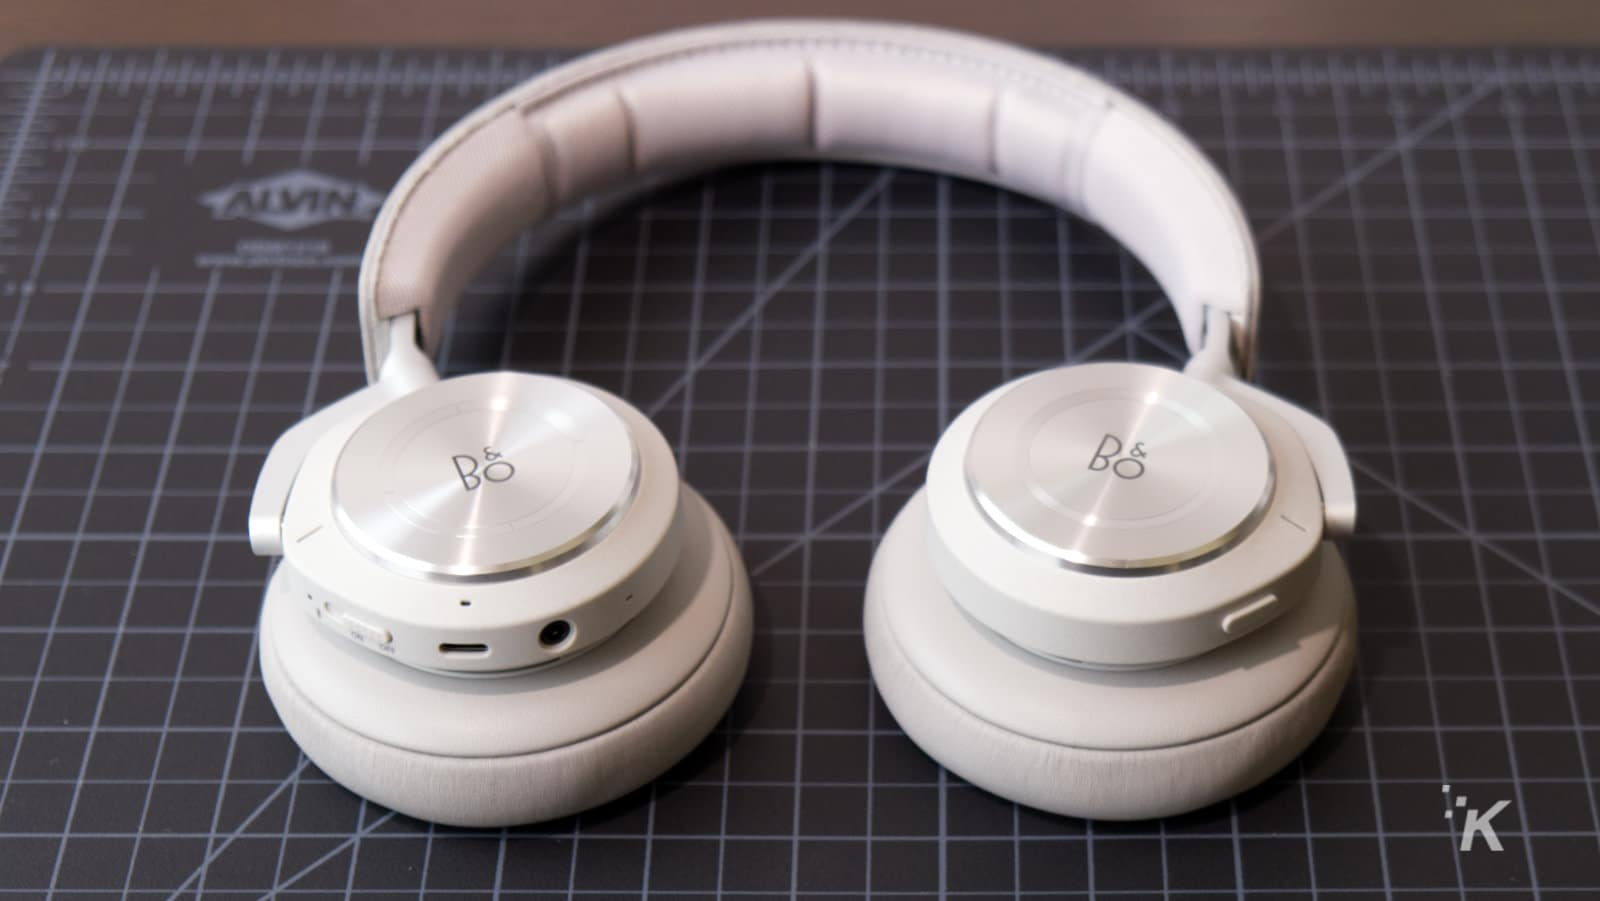 bang and olufsen beosound h9 headphones